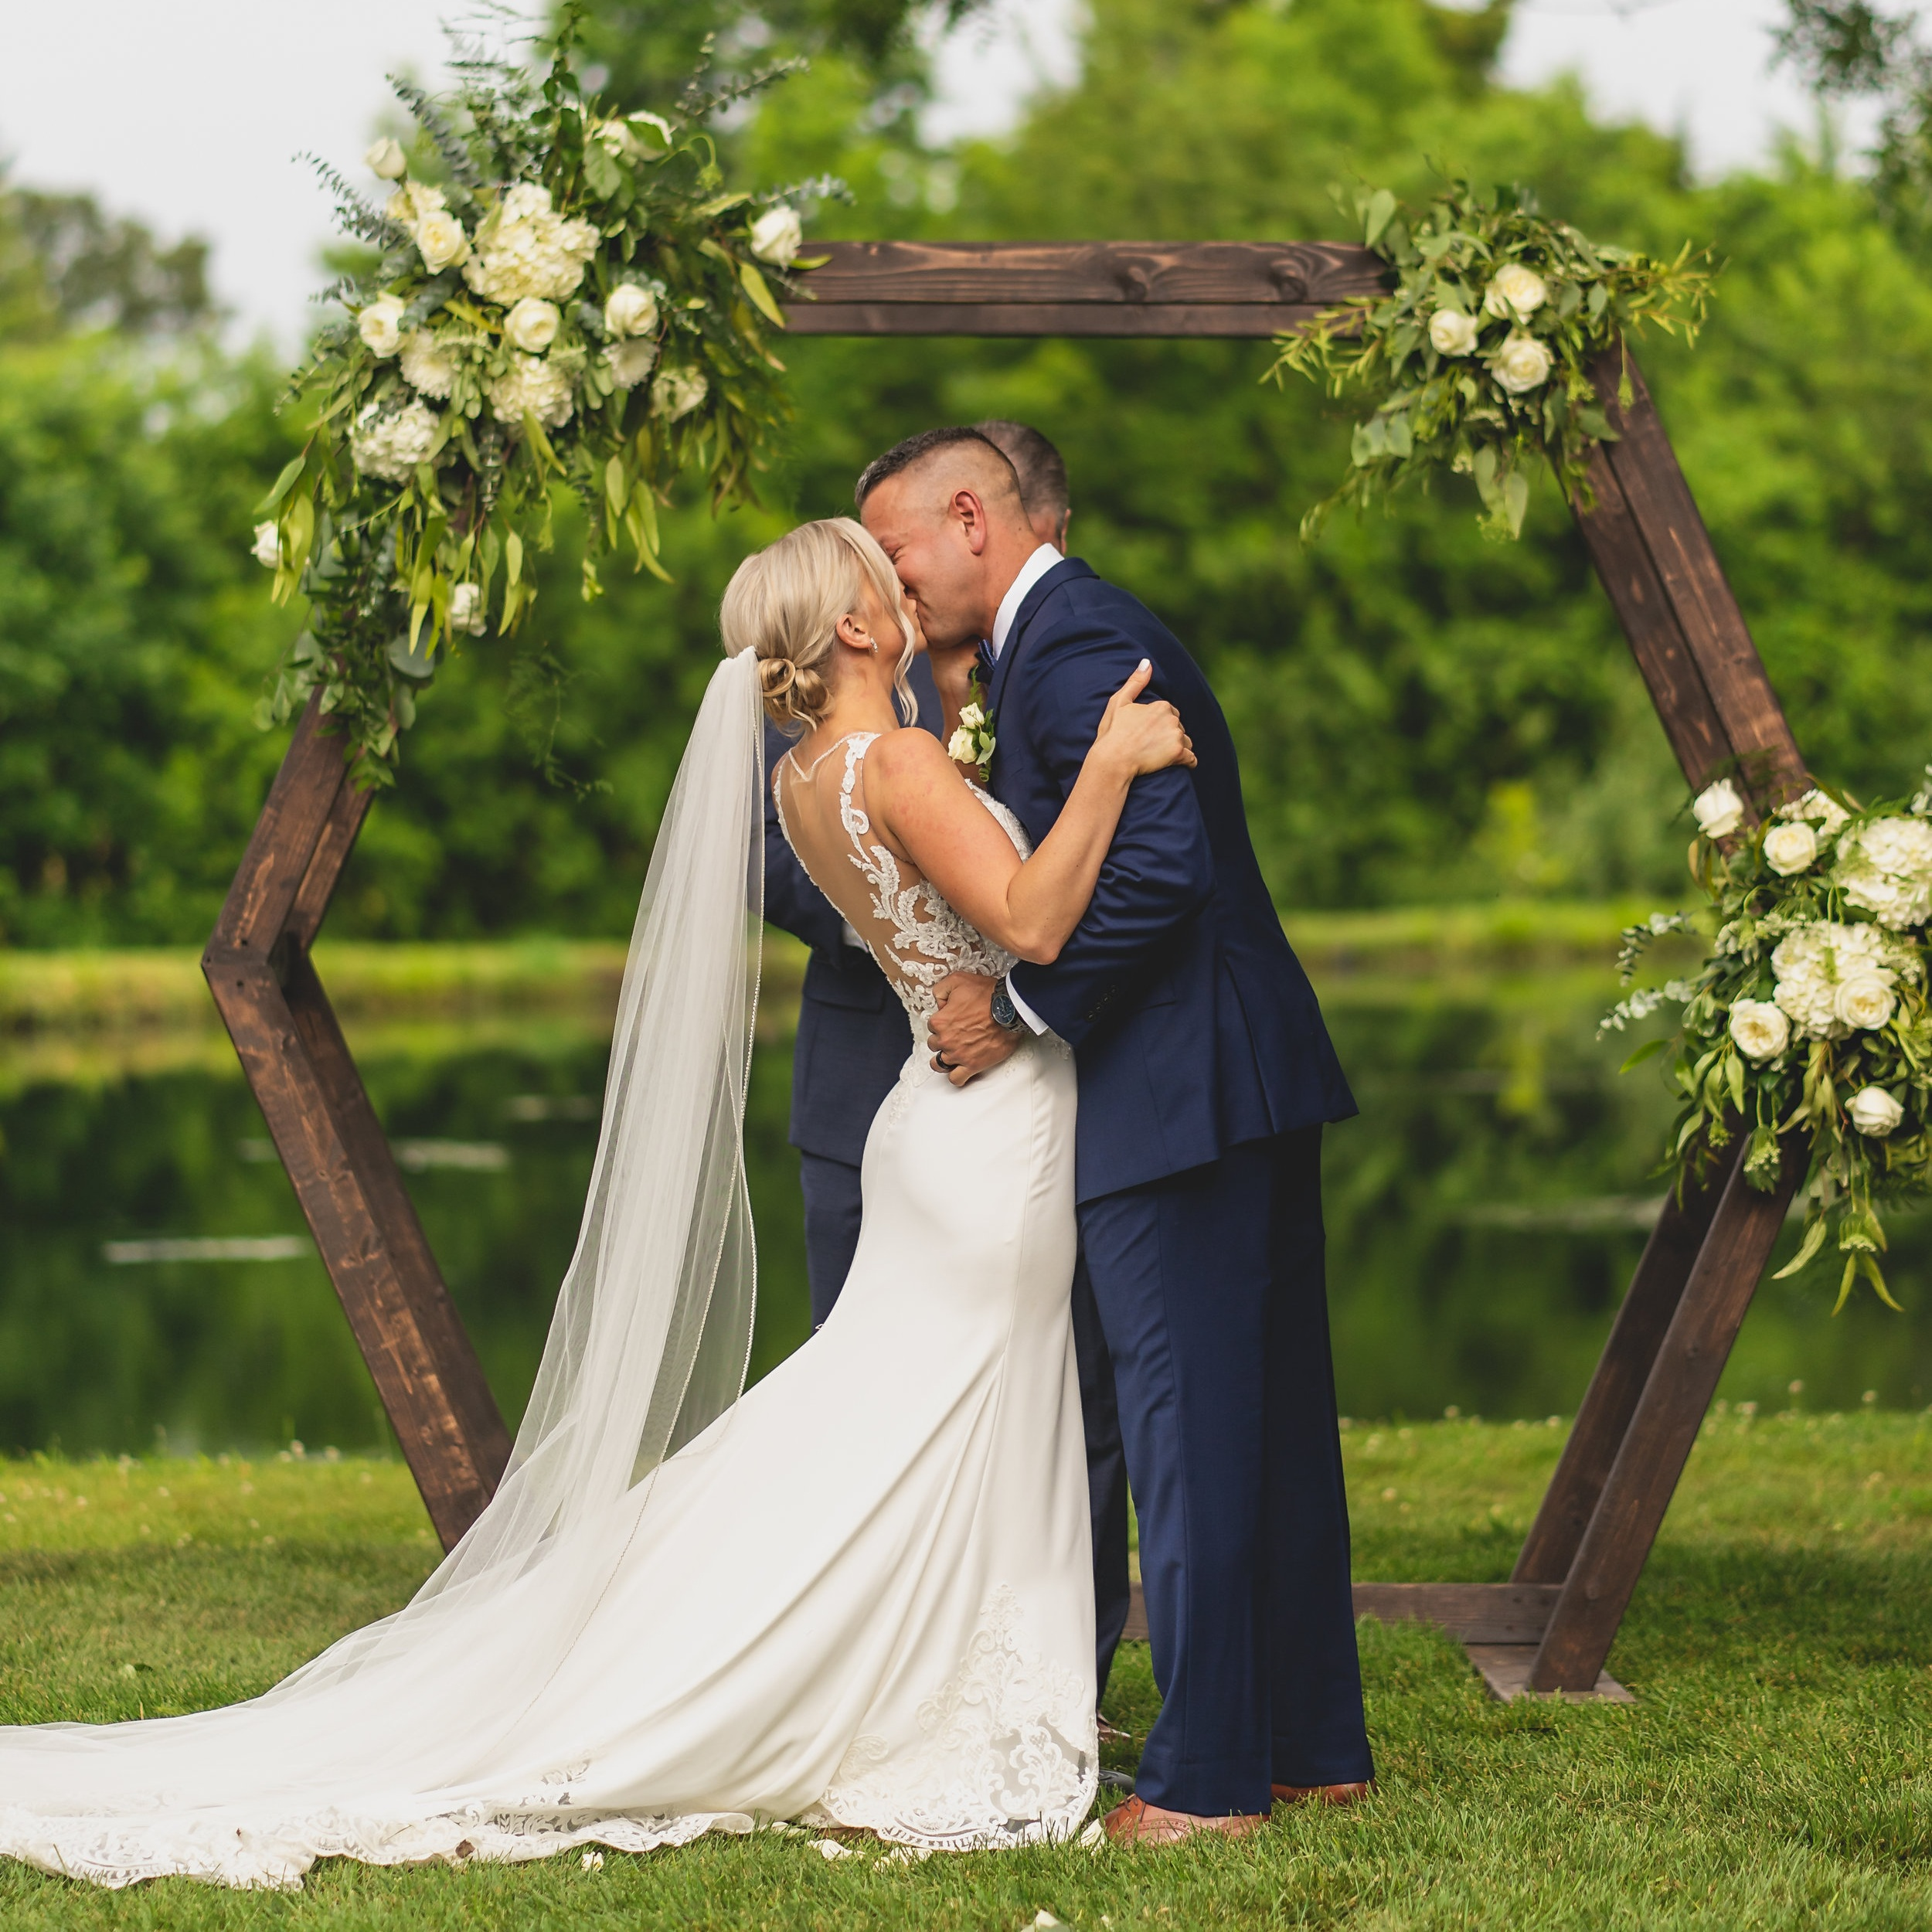 Rustic themed wedding - Bride and groom kiss in front of geometric wooden arches.